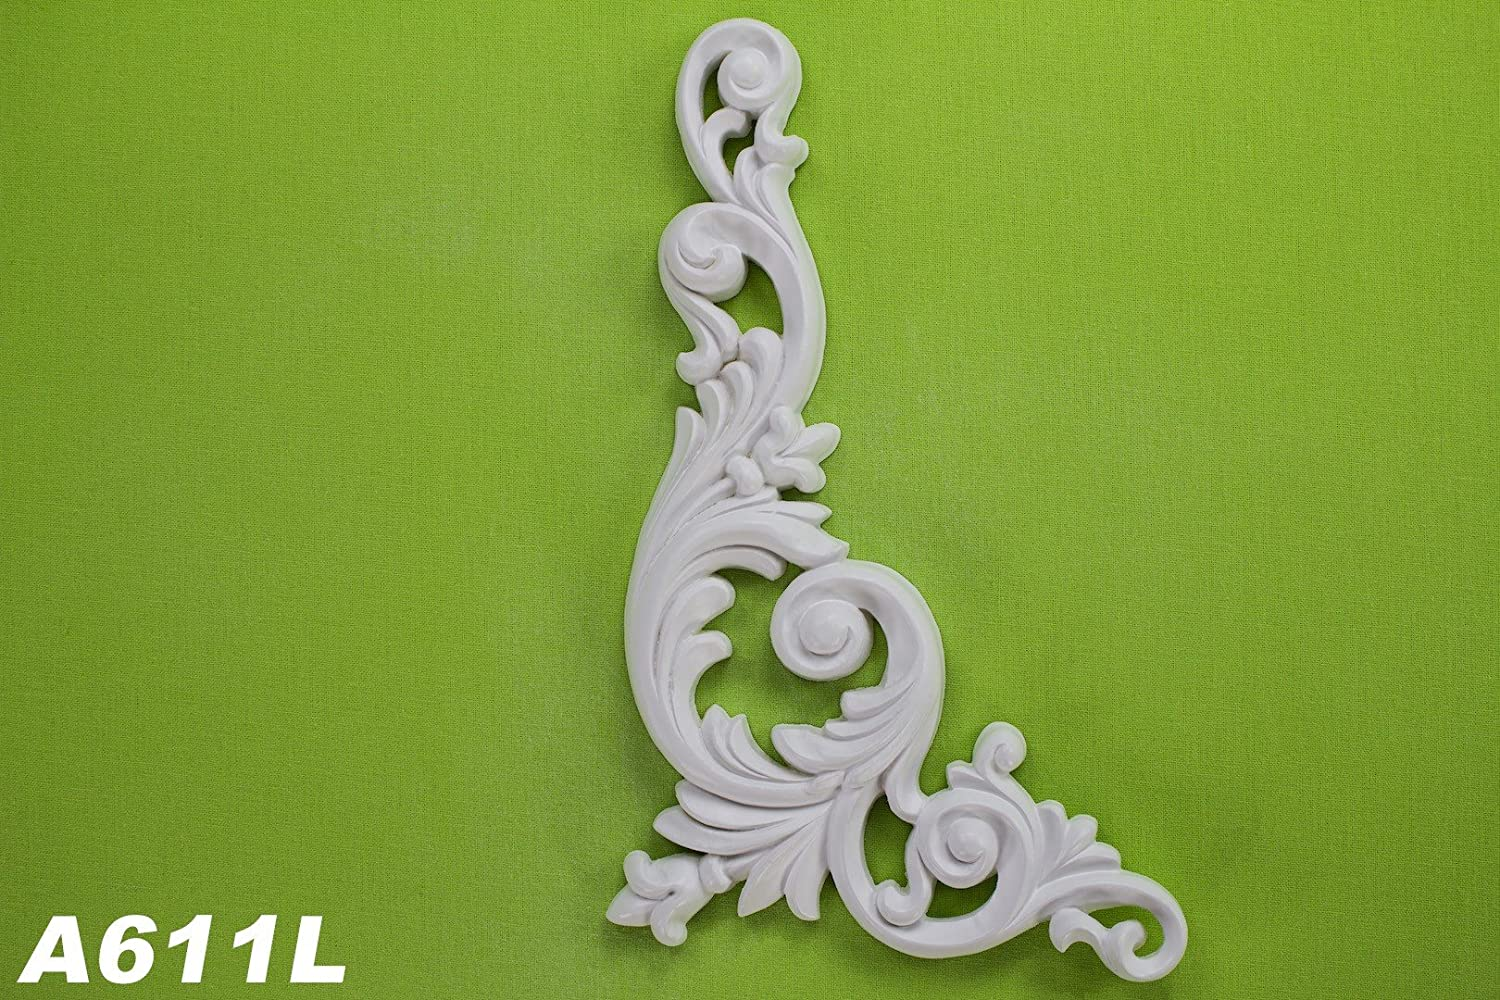 1 parete elemento Stuck parete ornamento parete interna parete antiurto 260 X 126 mm, a611l Grand Decor